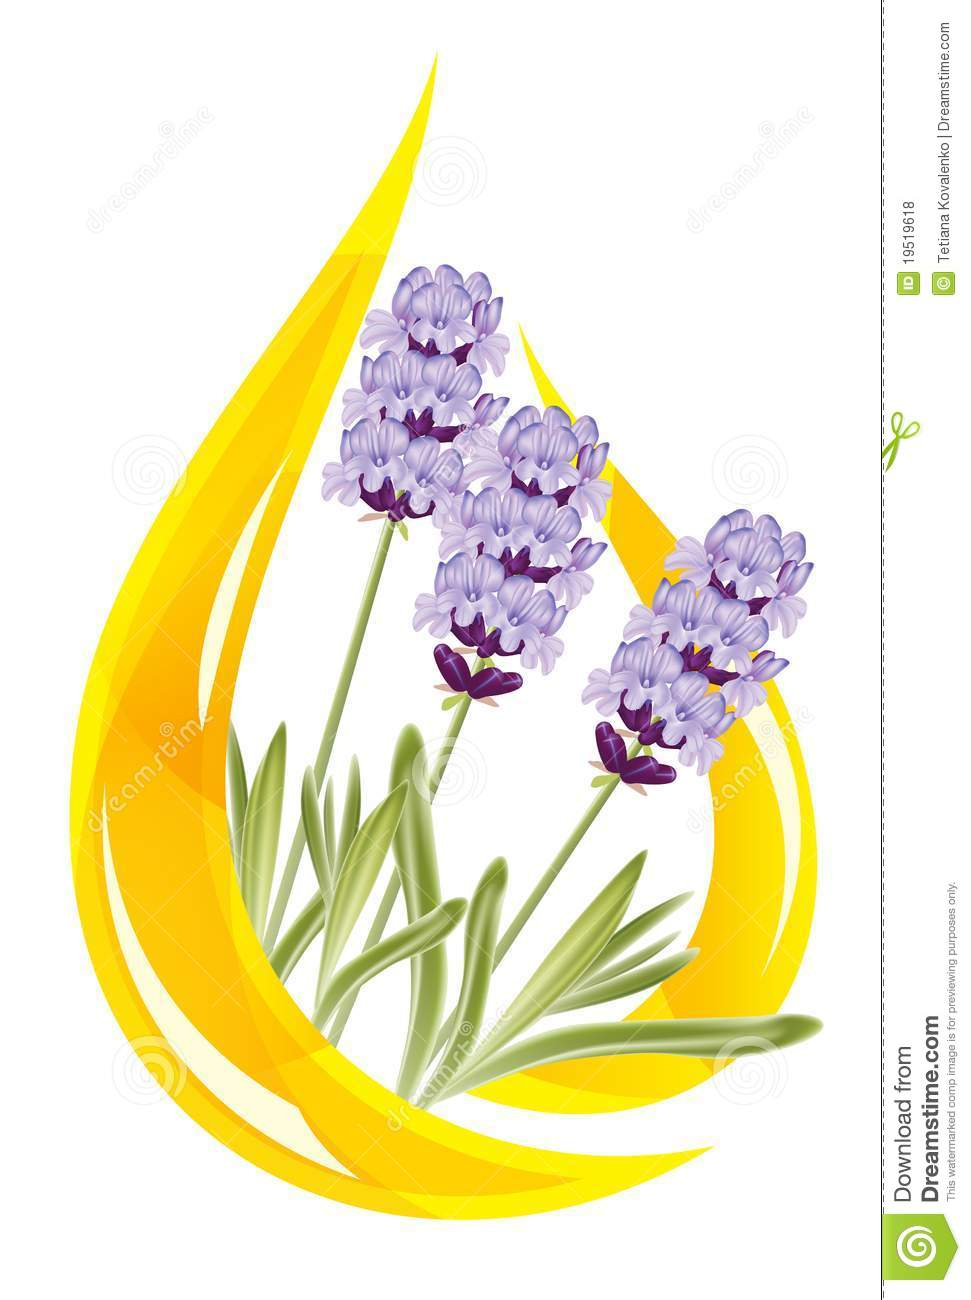 A Drop Of Lavender Essential Oil Royalty Free Stock